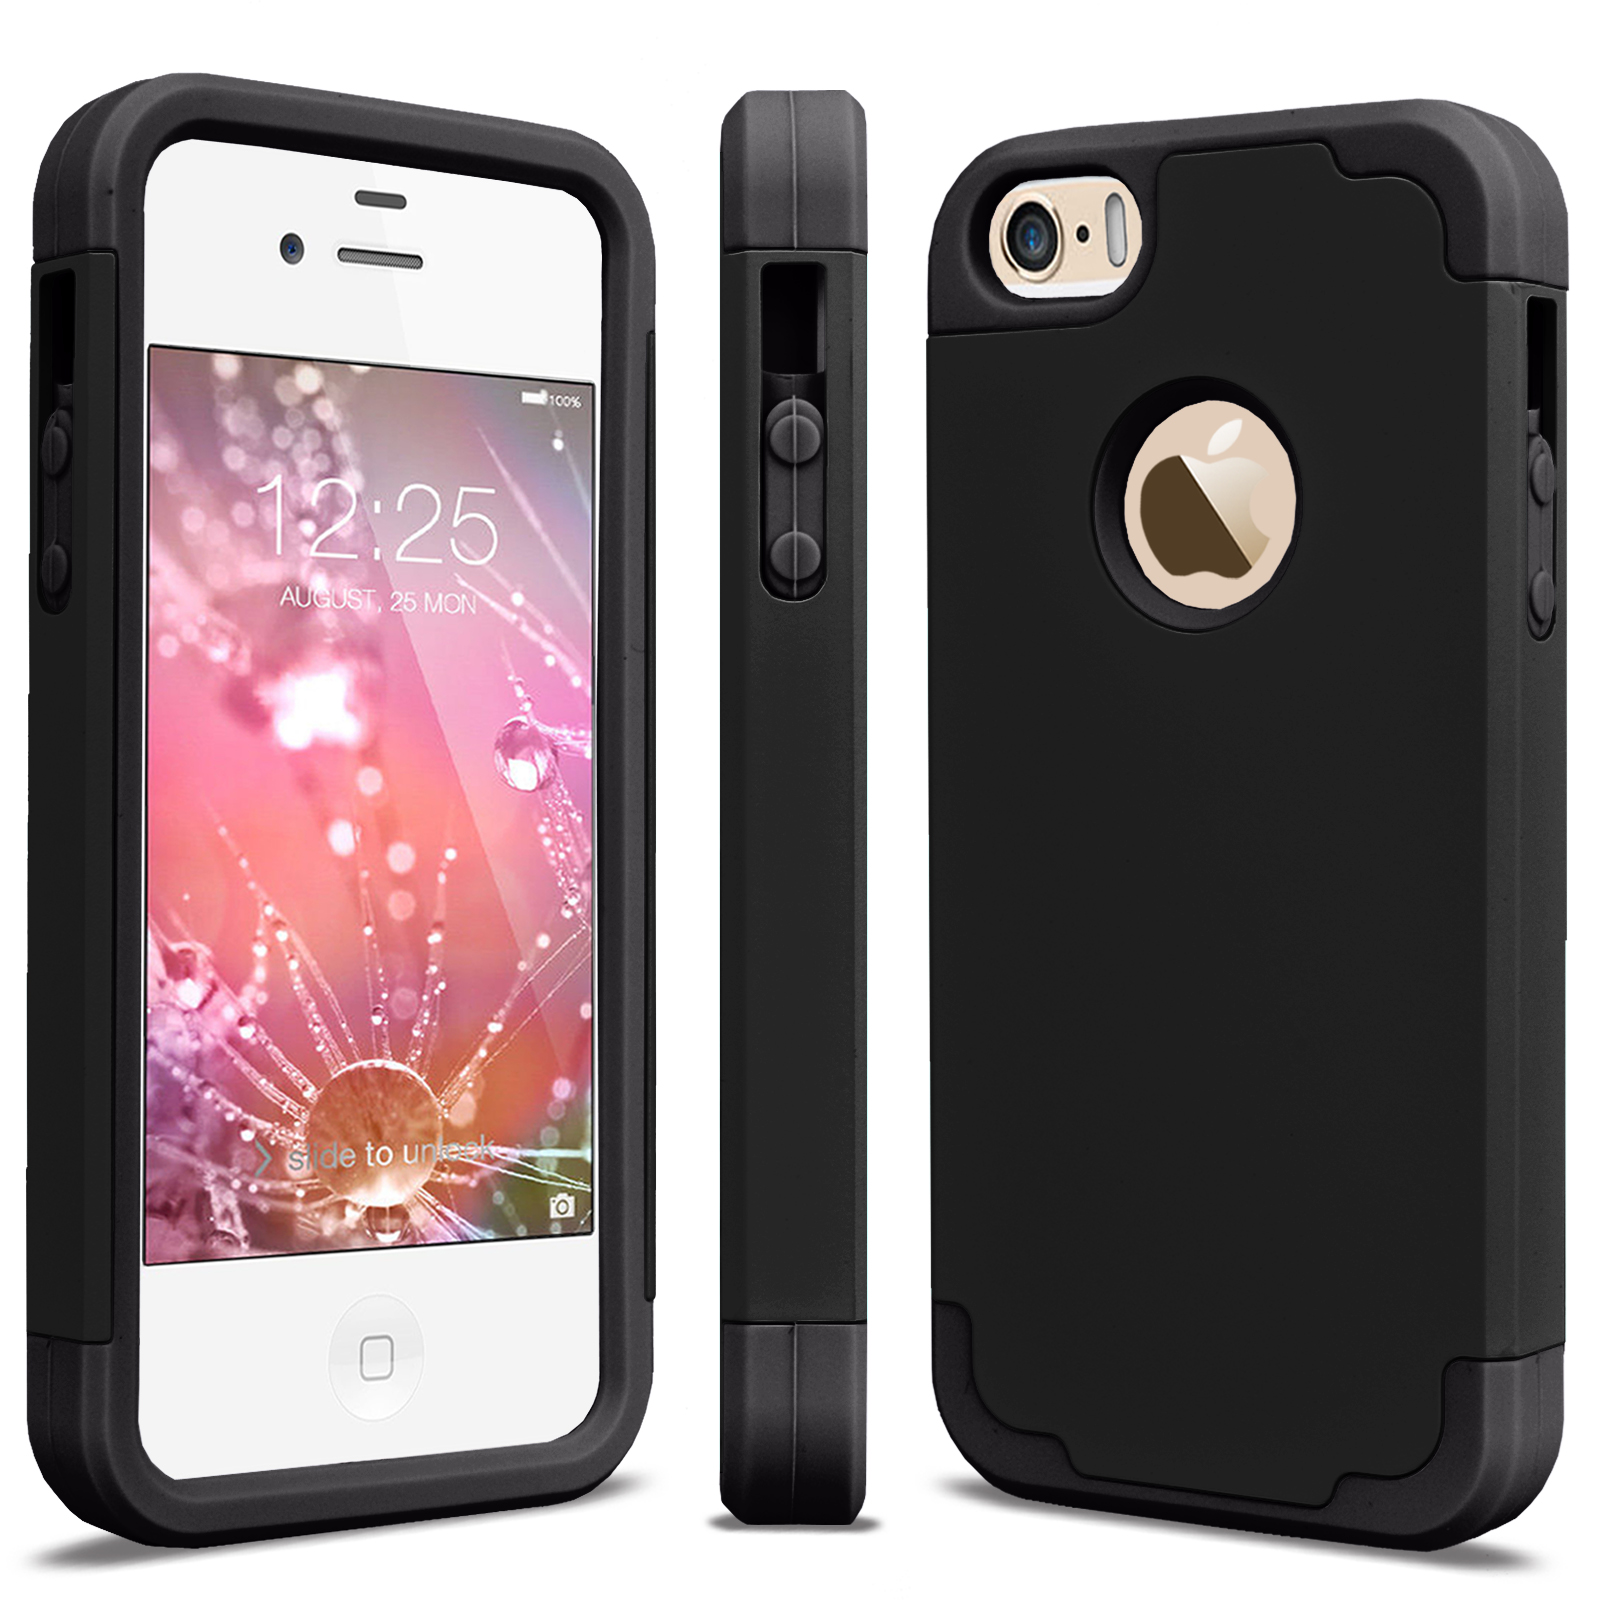 iPhone SE Case, iPhone SE Cute Case, iPhone SE Phone Case, Njjex [Purple/Black] Shock Absorbing Hard Slim Thin Cute Cover [Scratch Proof] Plastic Shell+TPU Rubber Inner For iPhone SE